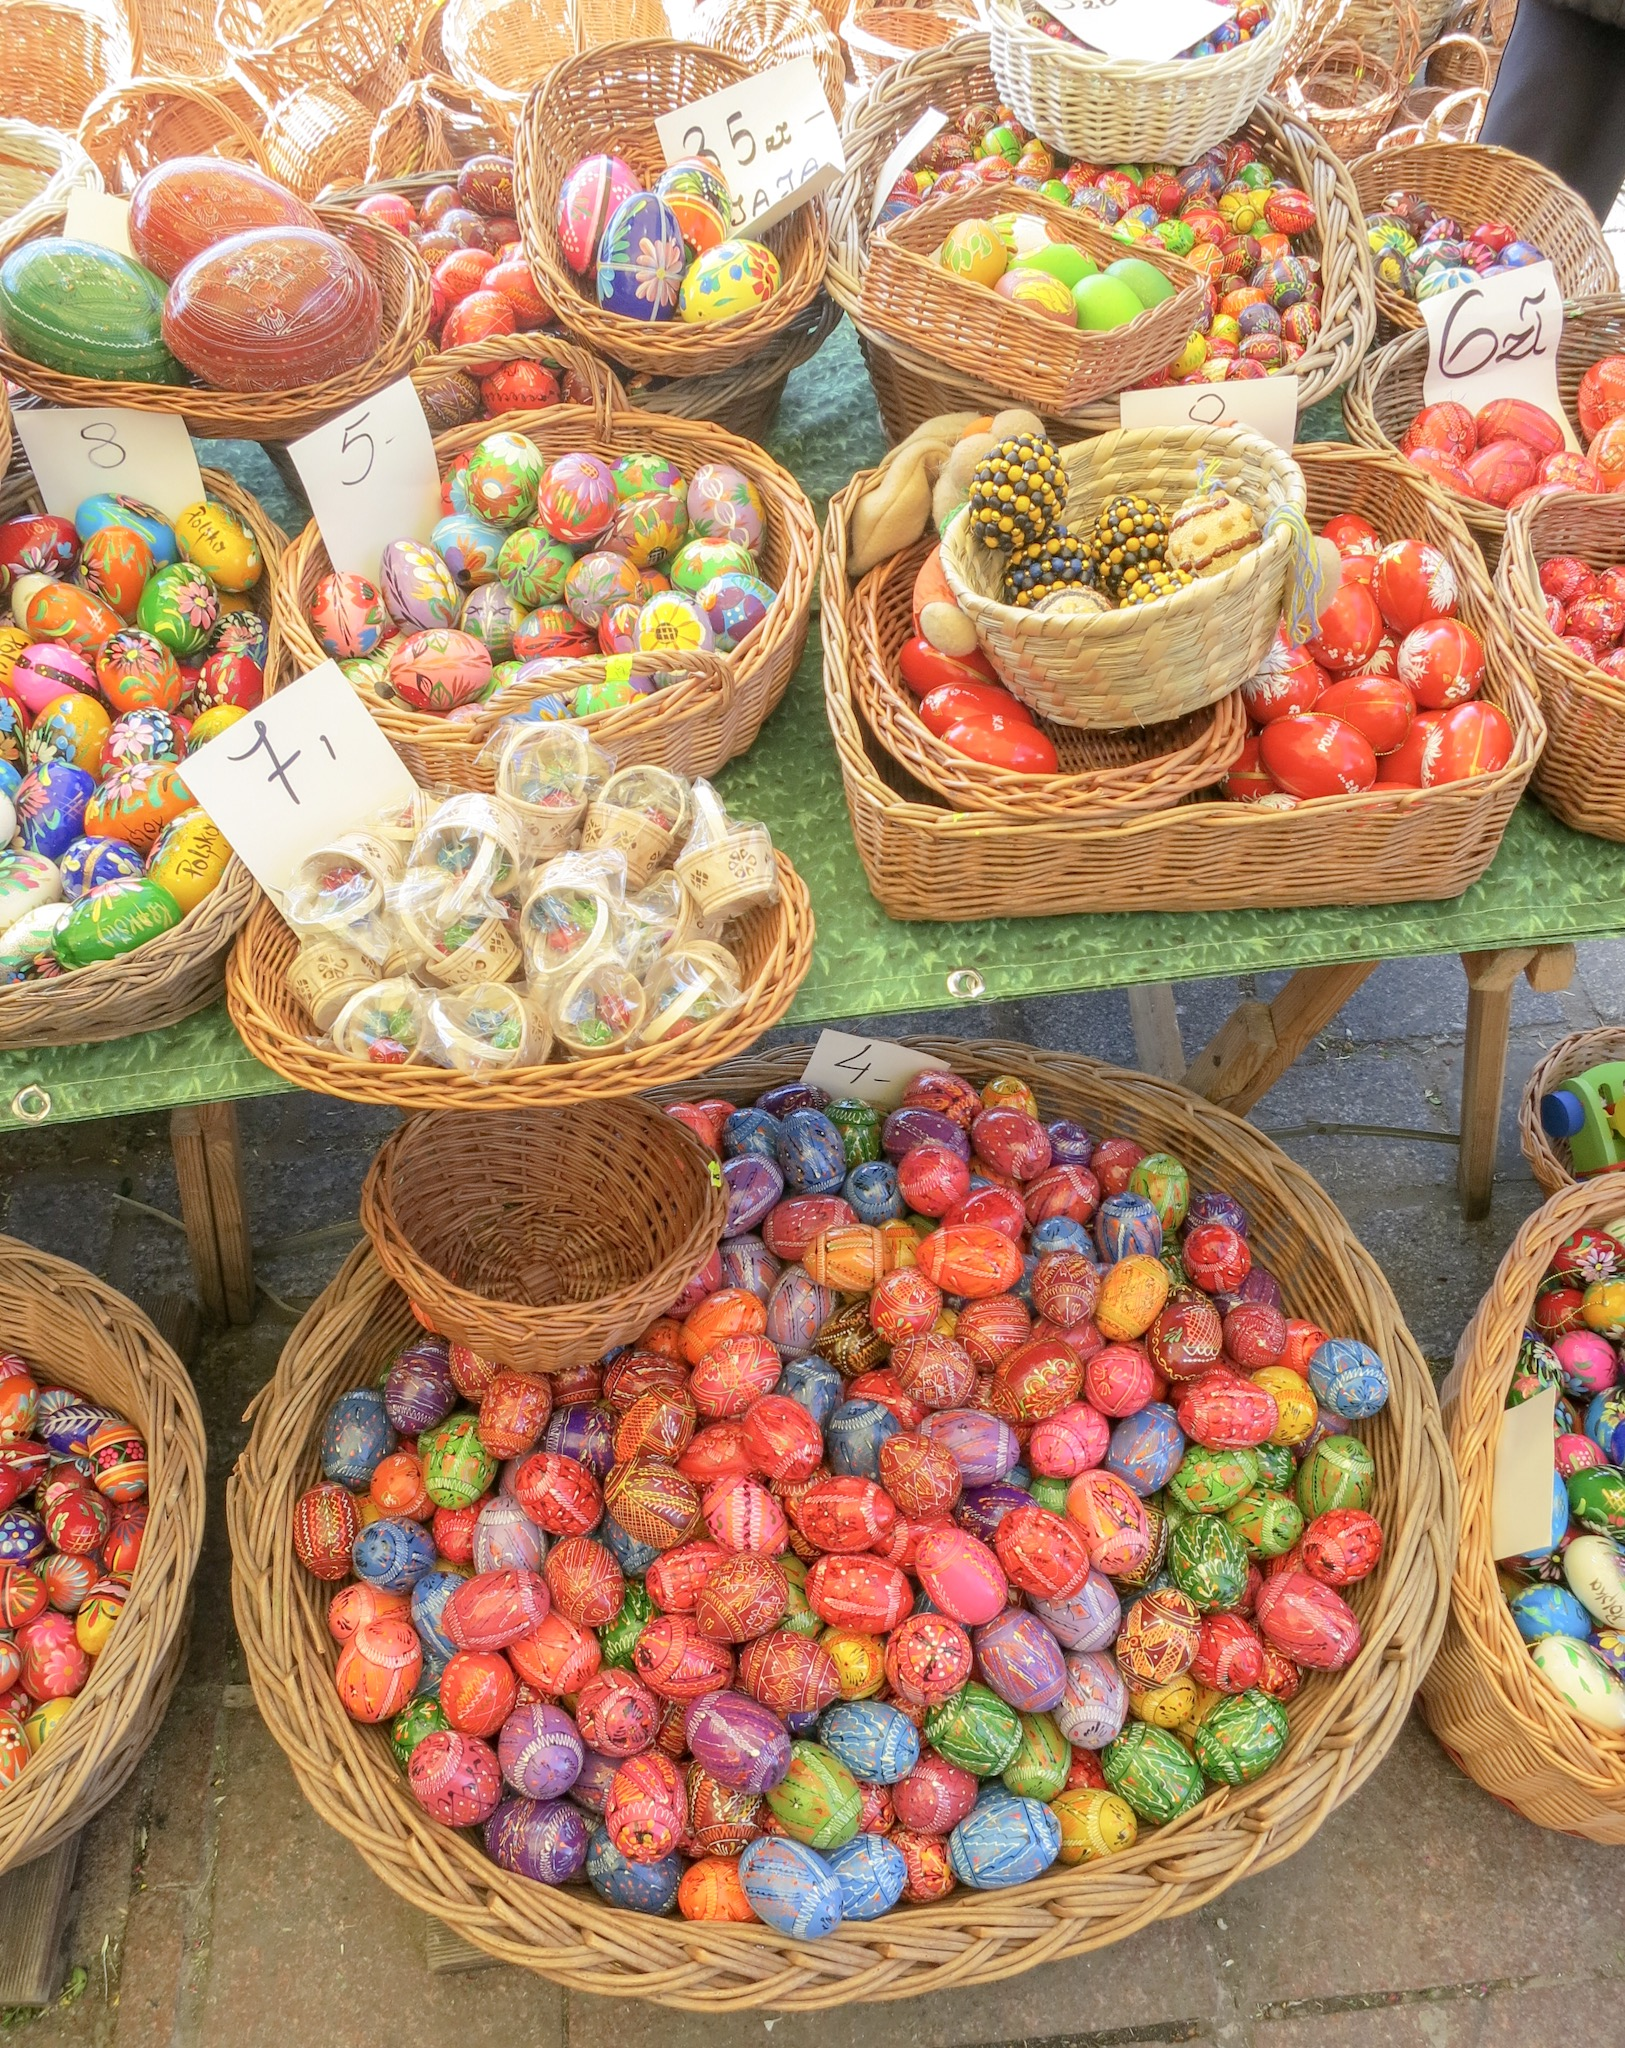 Pisanki (painted Easter eggs) at Krakow's Easter Market